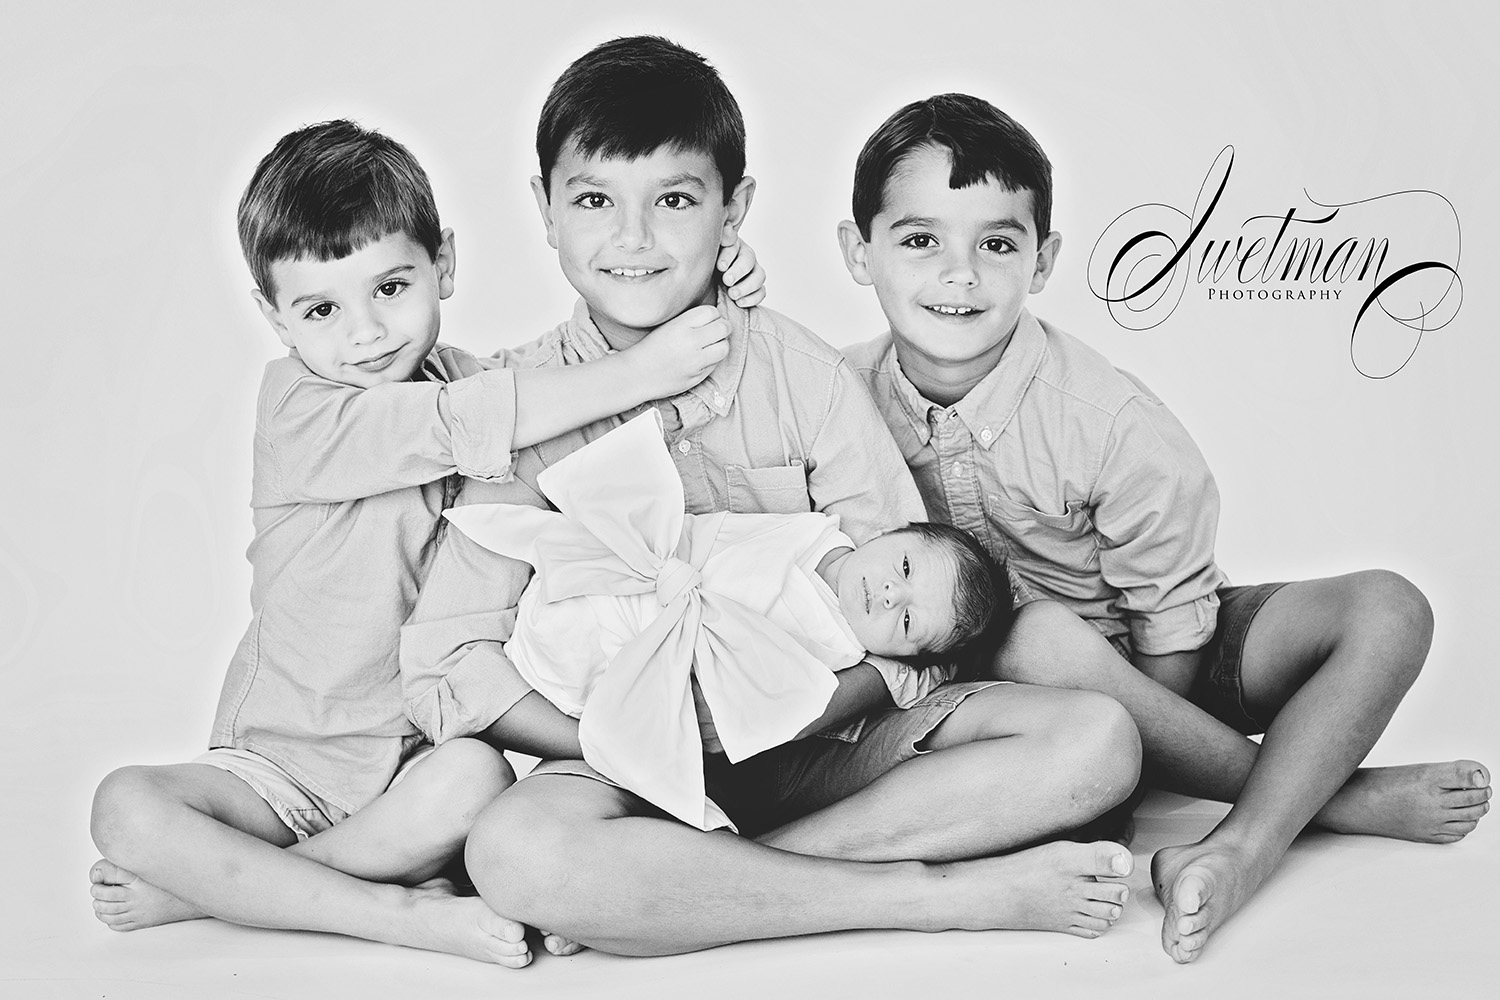 Swetman-Photography-Newborn-Photos-Brothers-Pascagoula-Mississippi.jpg